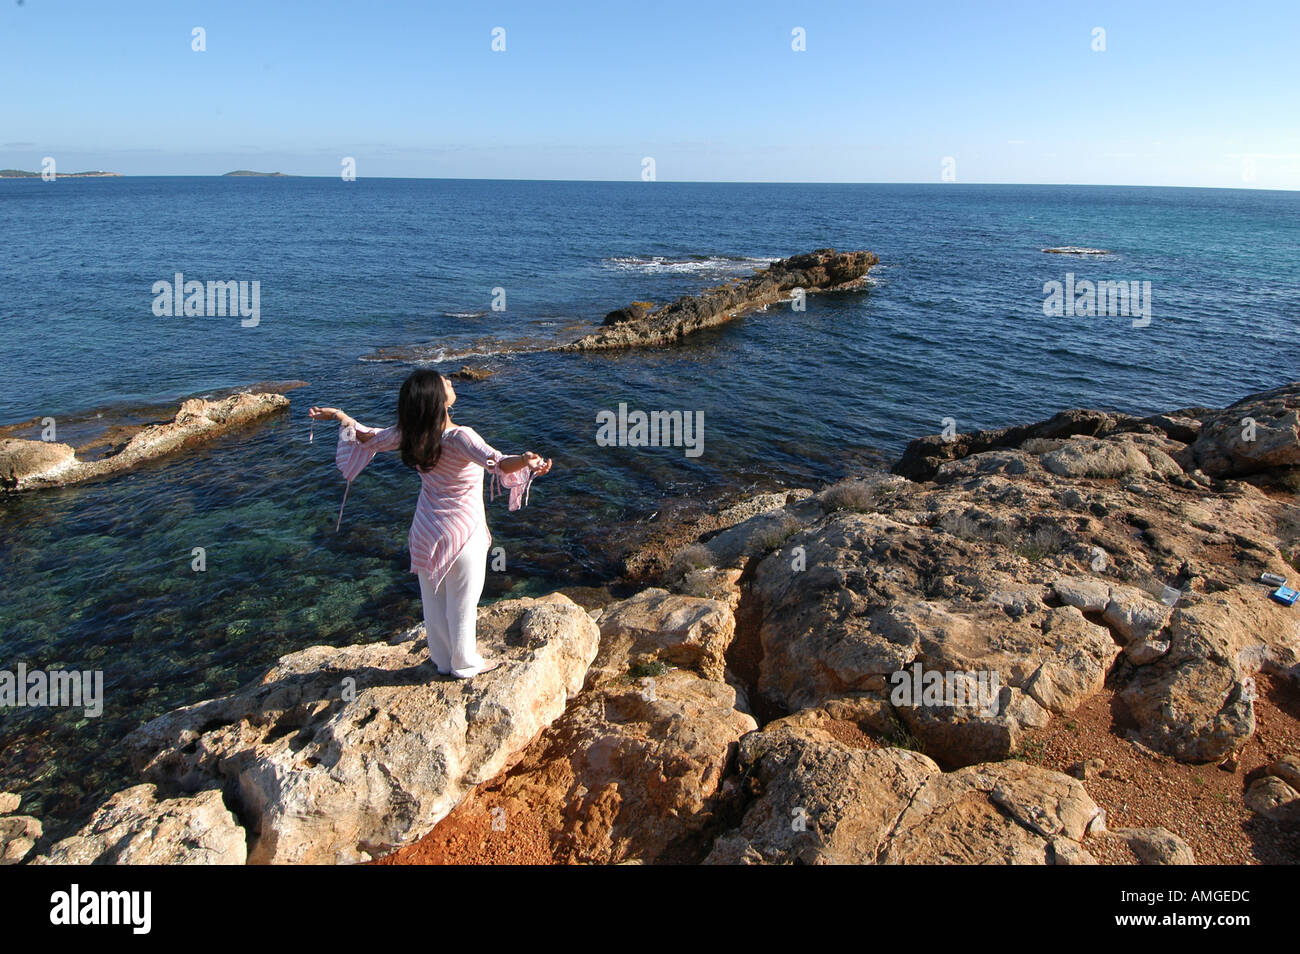 Awesome Rocks In Spanish Part - 12: Mixed Race Young Woman Half Asian Half Spanish Standing On The Rocks Next  To The Ocean Breathing And Relaxing In Ibiza Spain